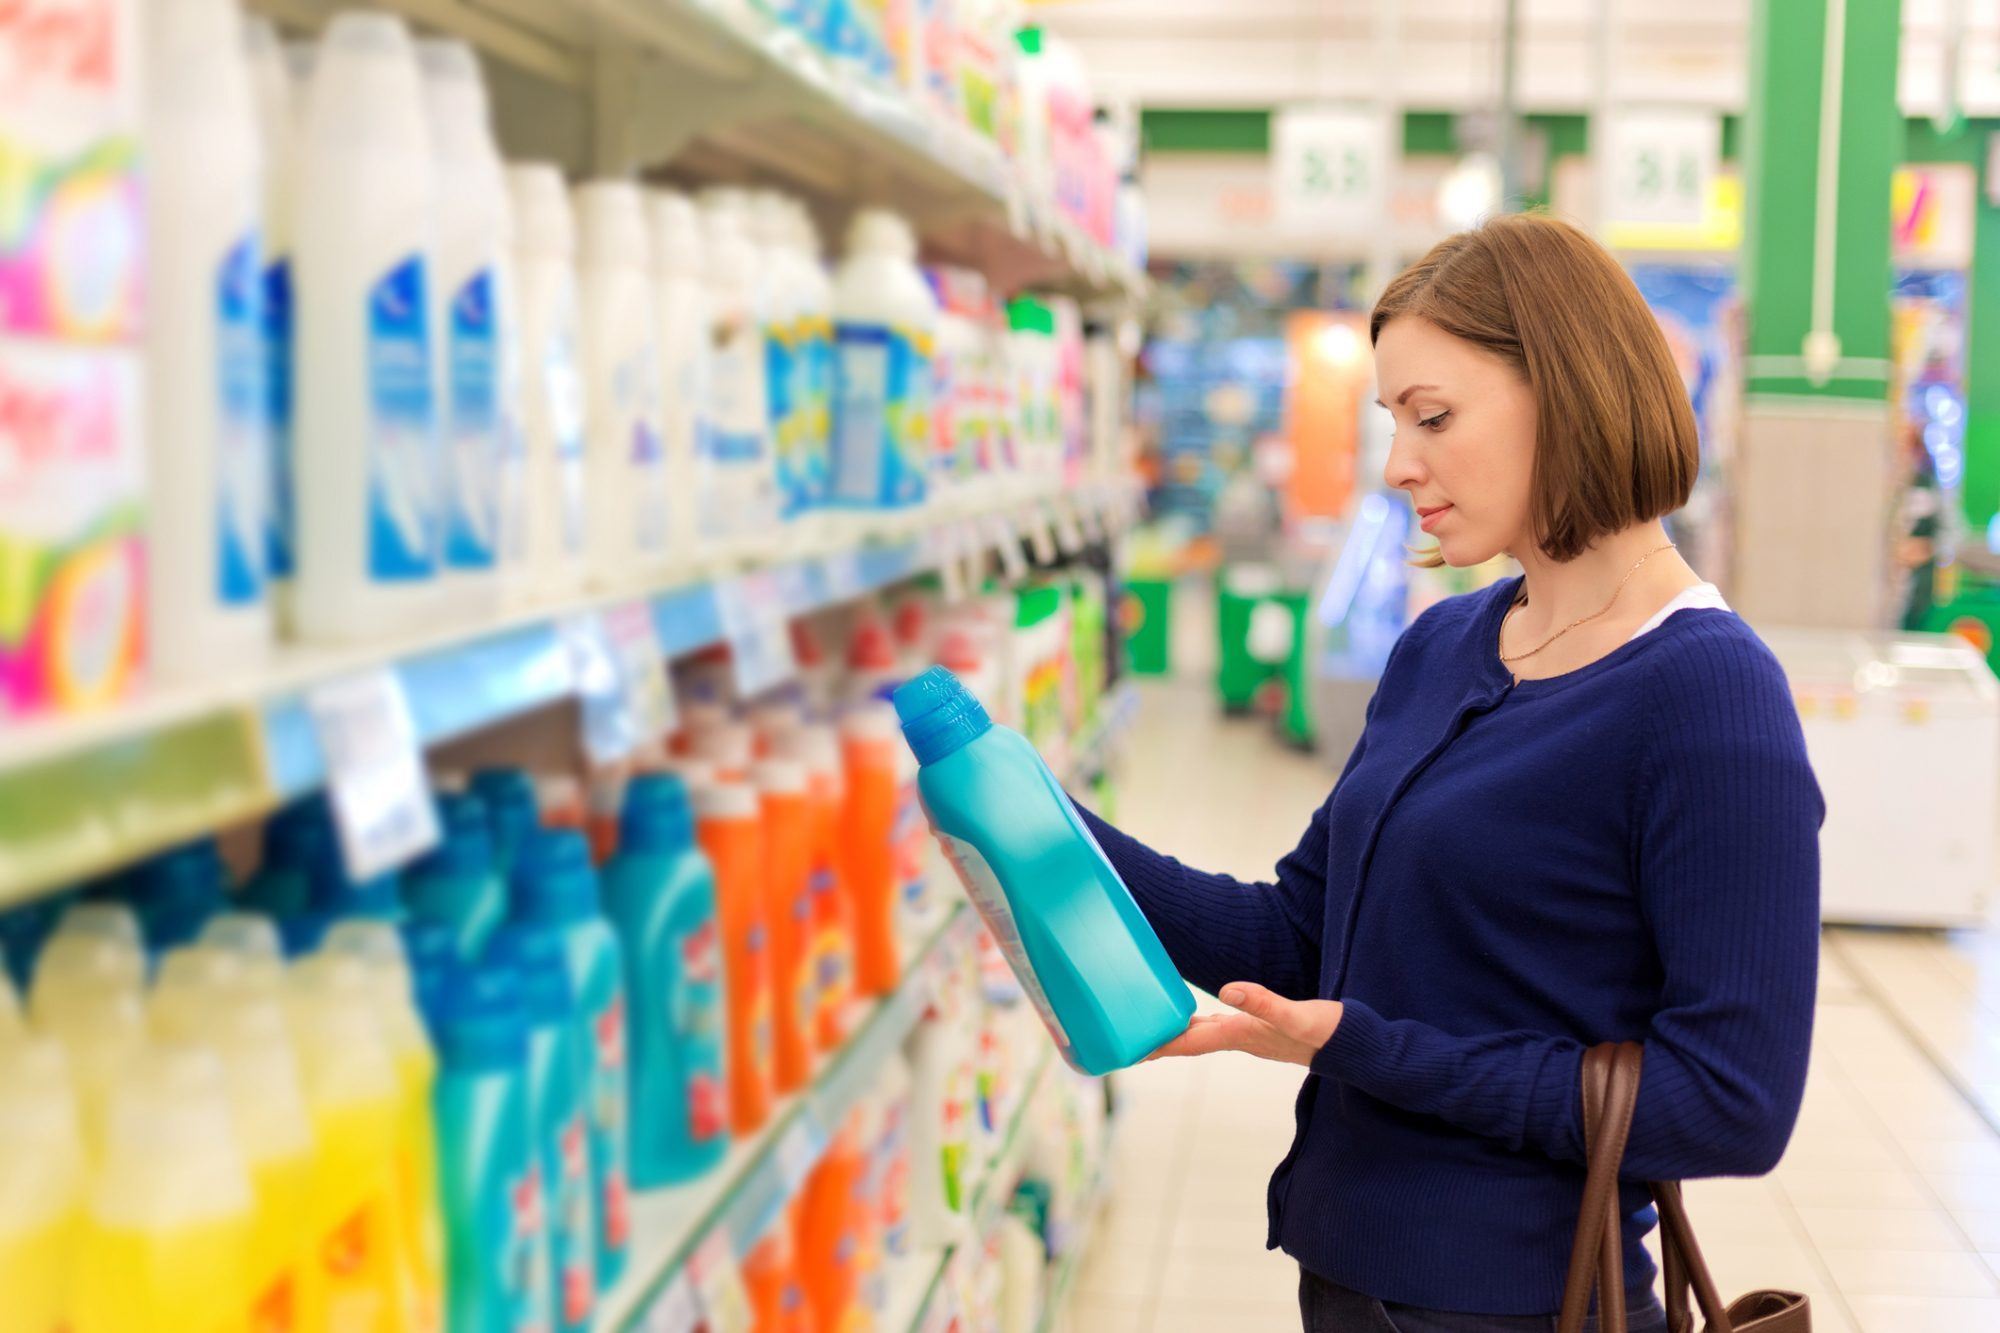 What's the Difference Between High Efficiency Detergent and Regular Detergent?